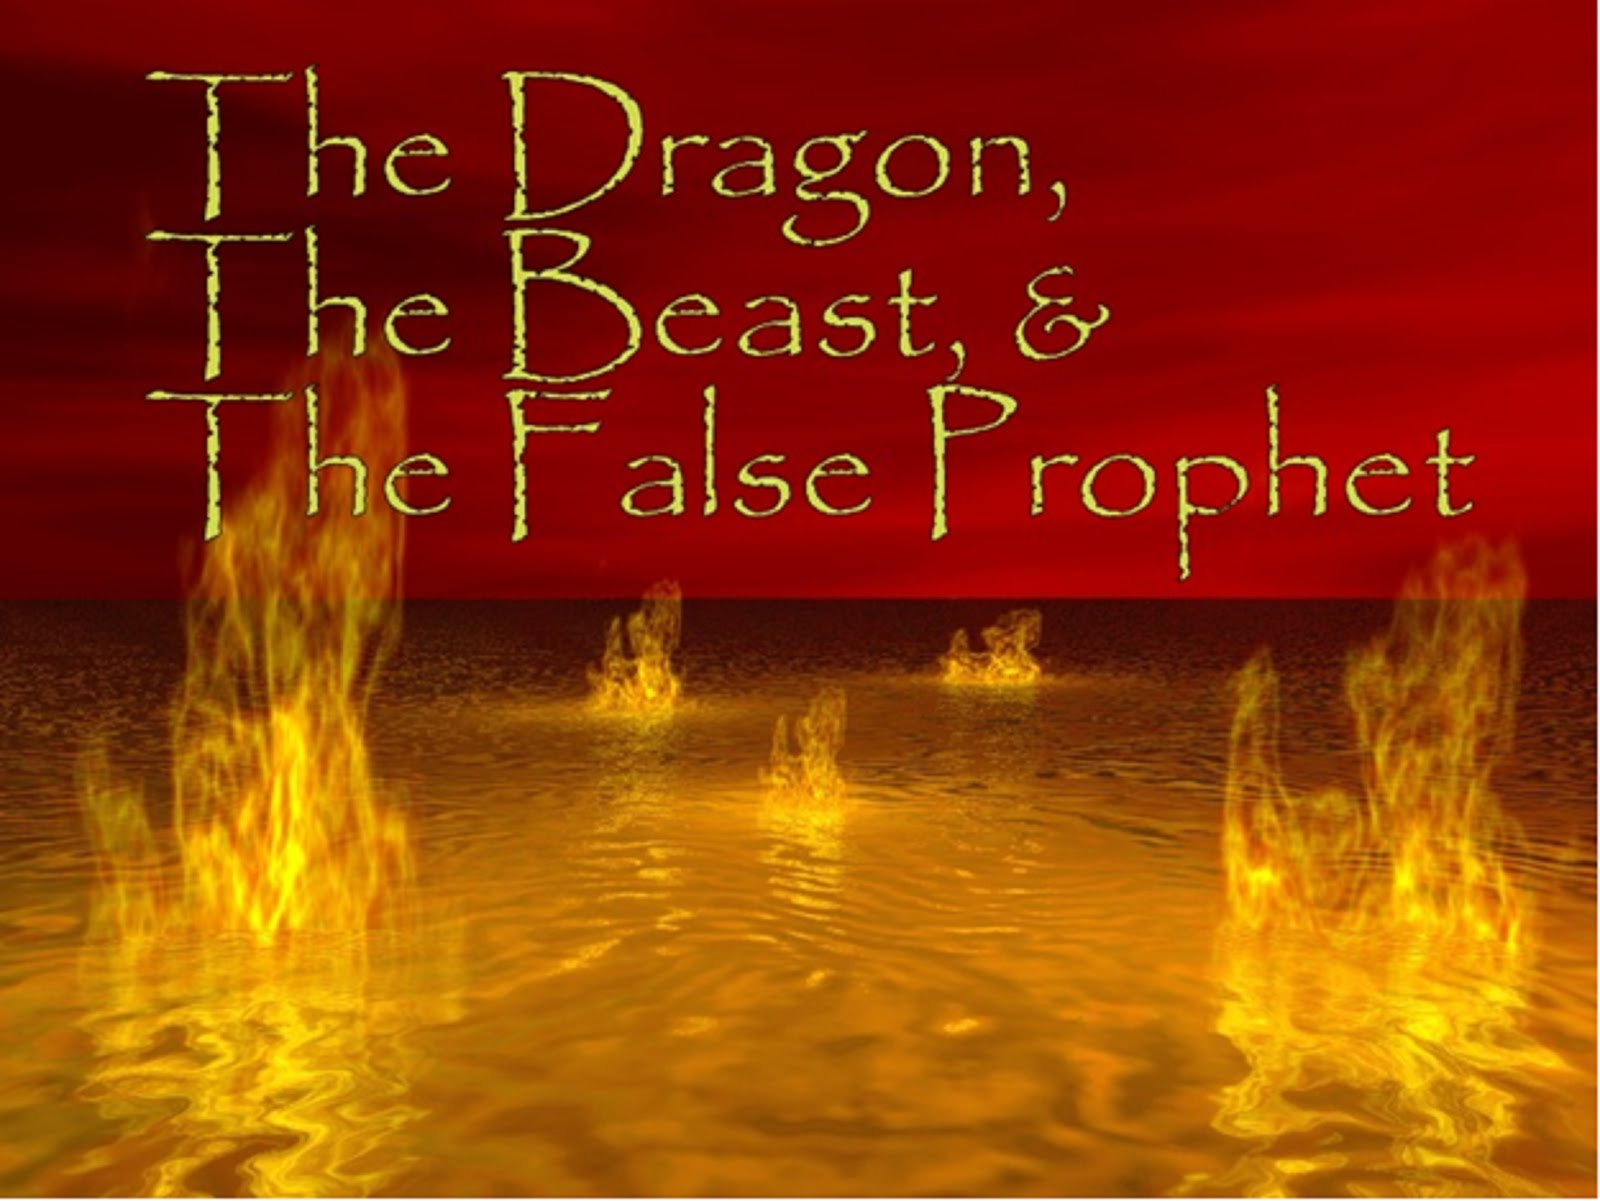 THE DRAGON, THE BEAST AND THE FALSE PROPHET IN THE LAKE OF FIRE